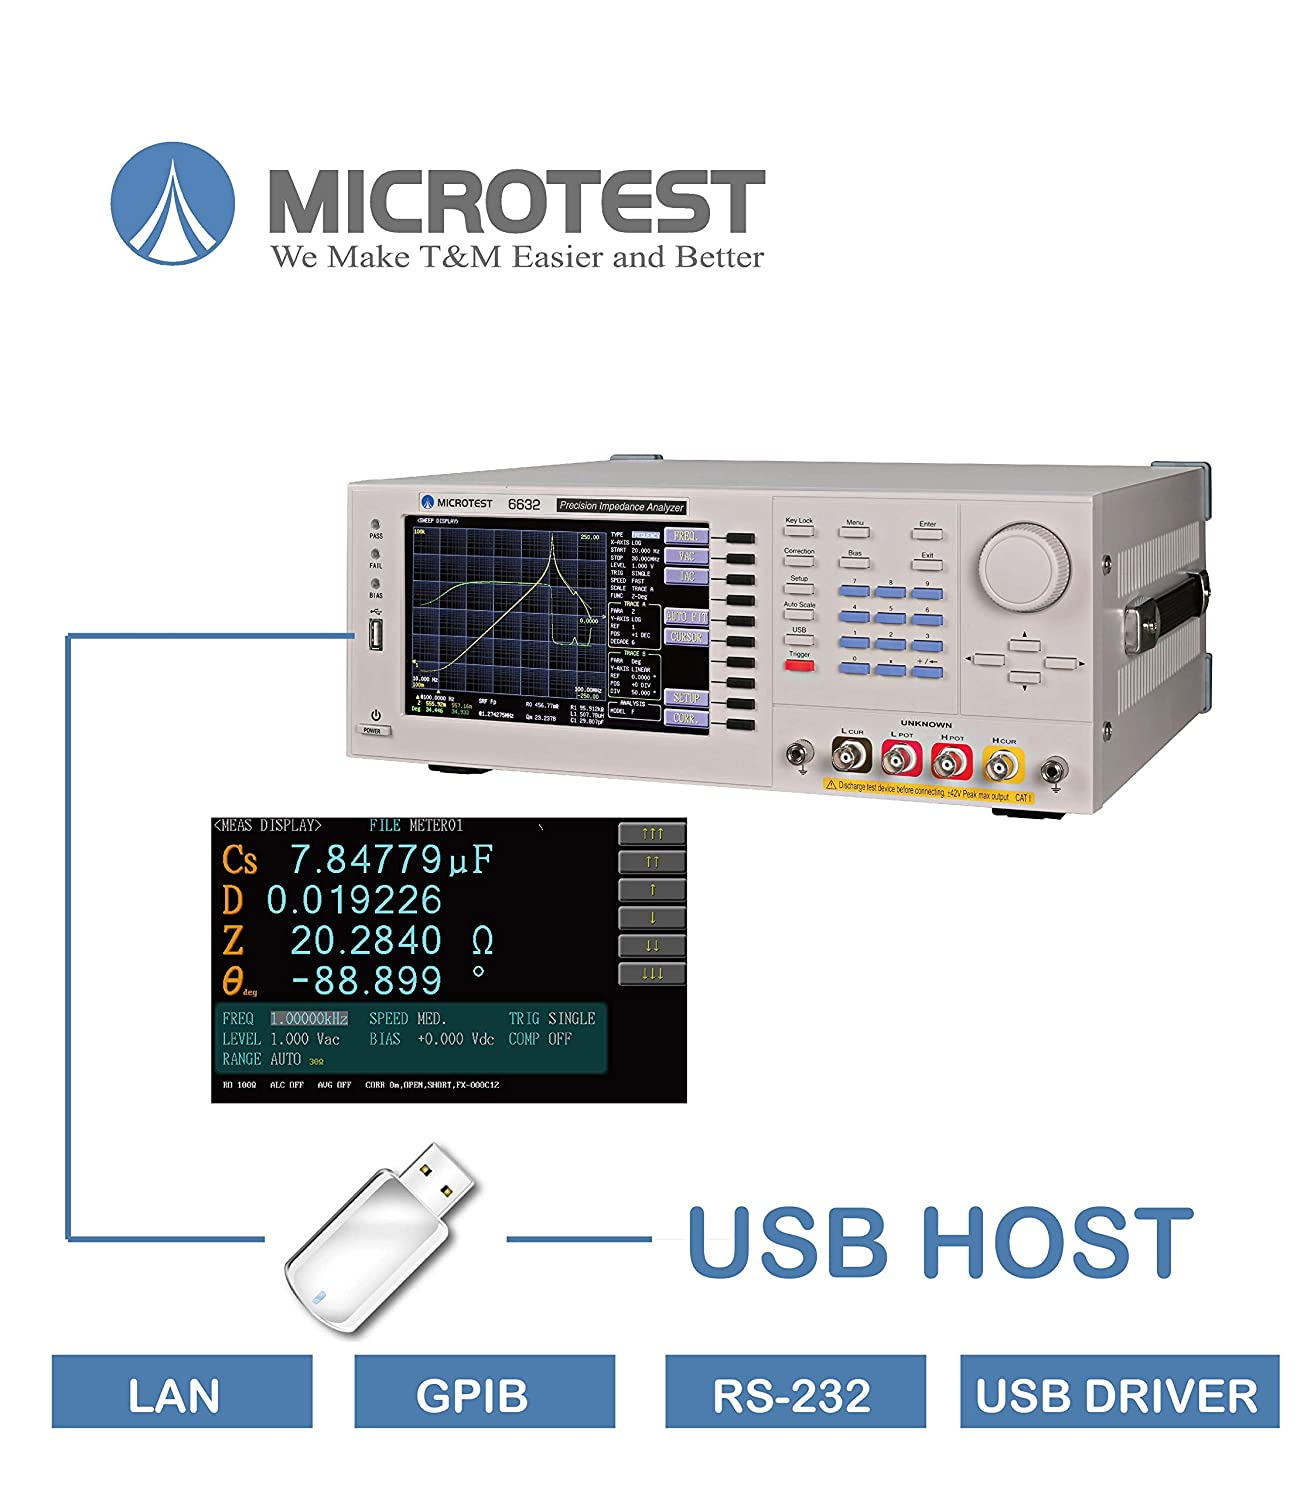 MICROTEST 6632 Series Impedance Analyzer and Benchtop LCR Meter Tester GS Frequency 10Hz~30MHz Measuring Electronic Components and Measuring The Resonance Characteristics of a Piezoelectric Element